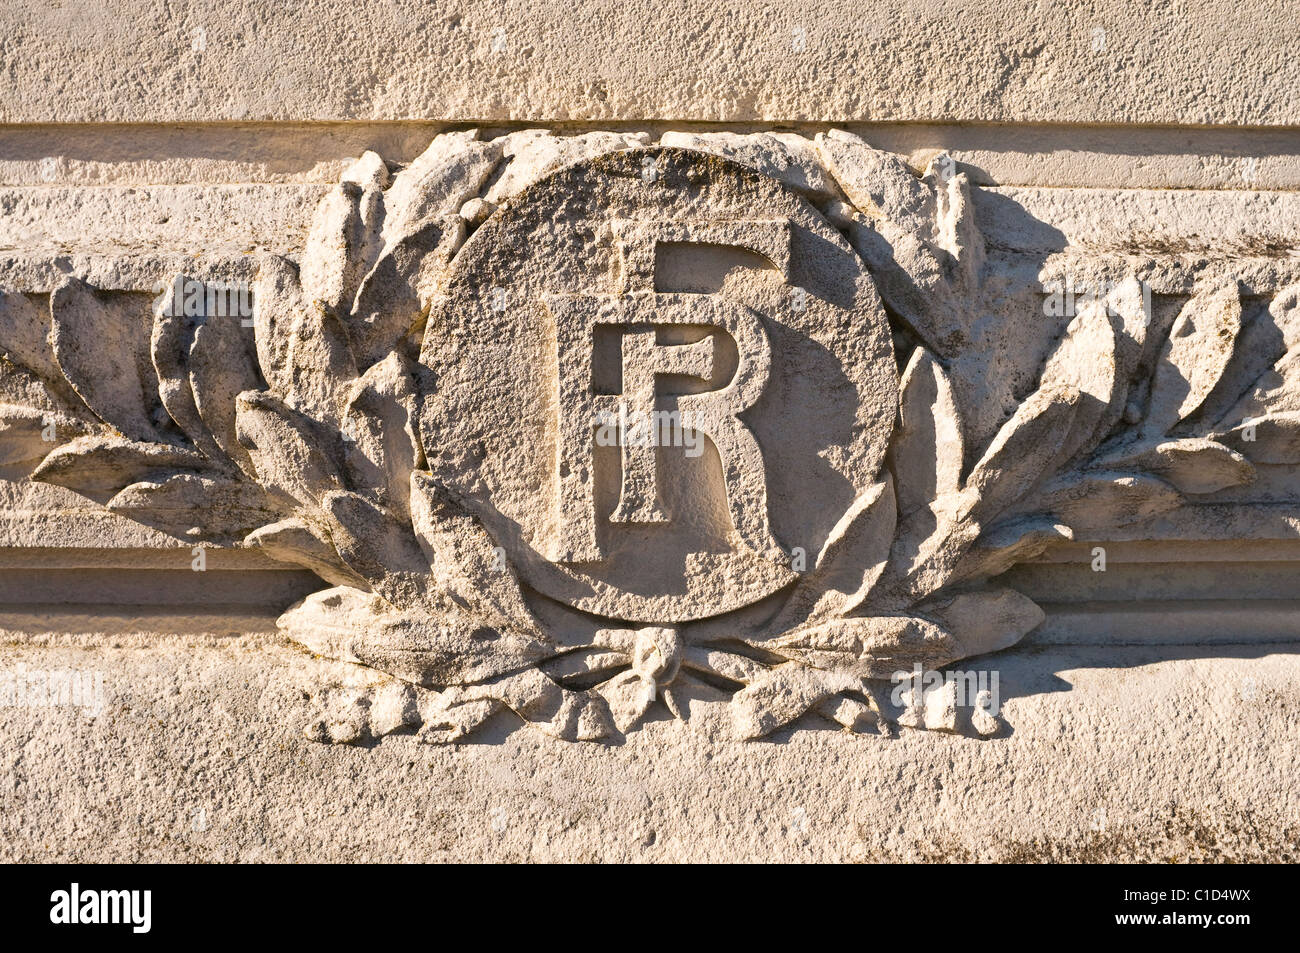 RF / Republique Francaise stone carving on war memorial - France. - Stock Image